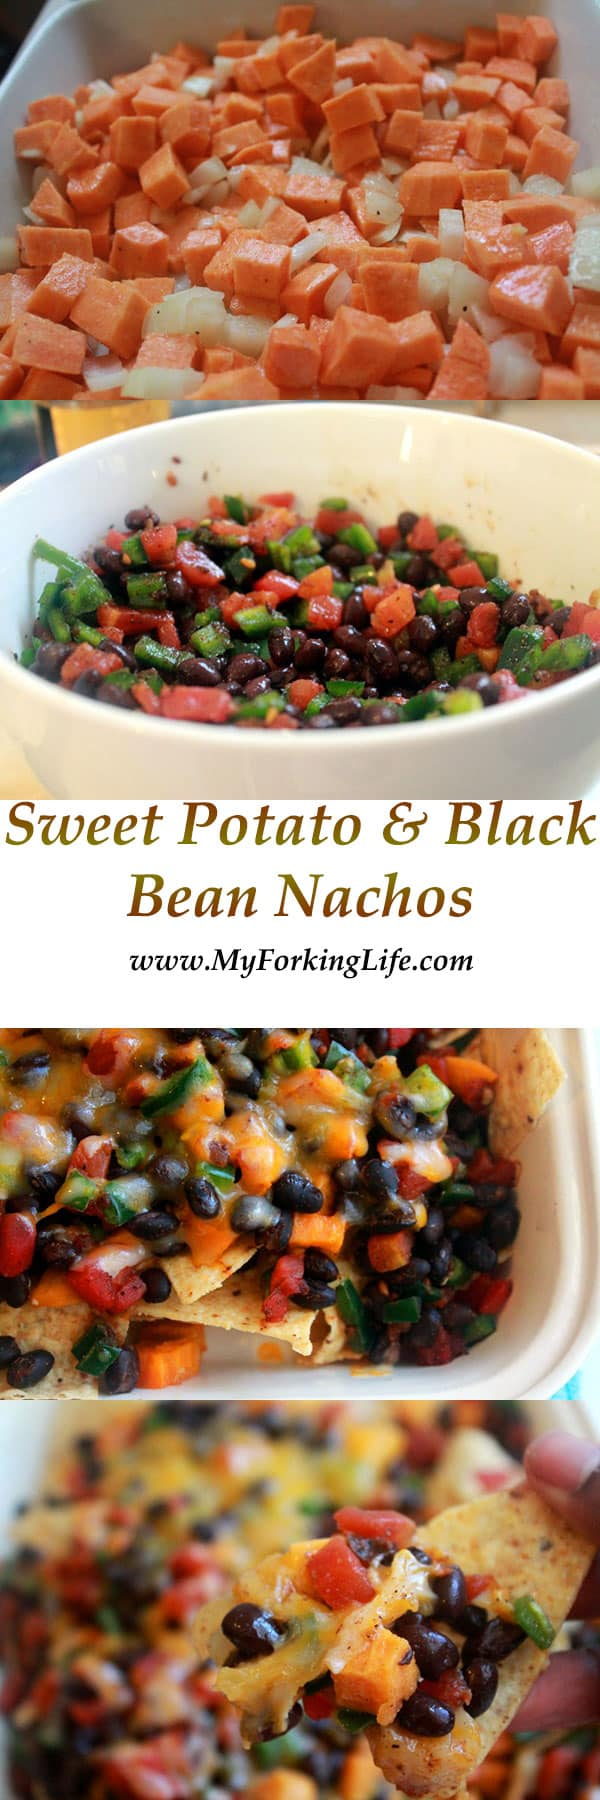 sweet potato & black bean nachos. # vegetarian. #meatlessmeals www.myforkinglife.com